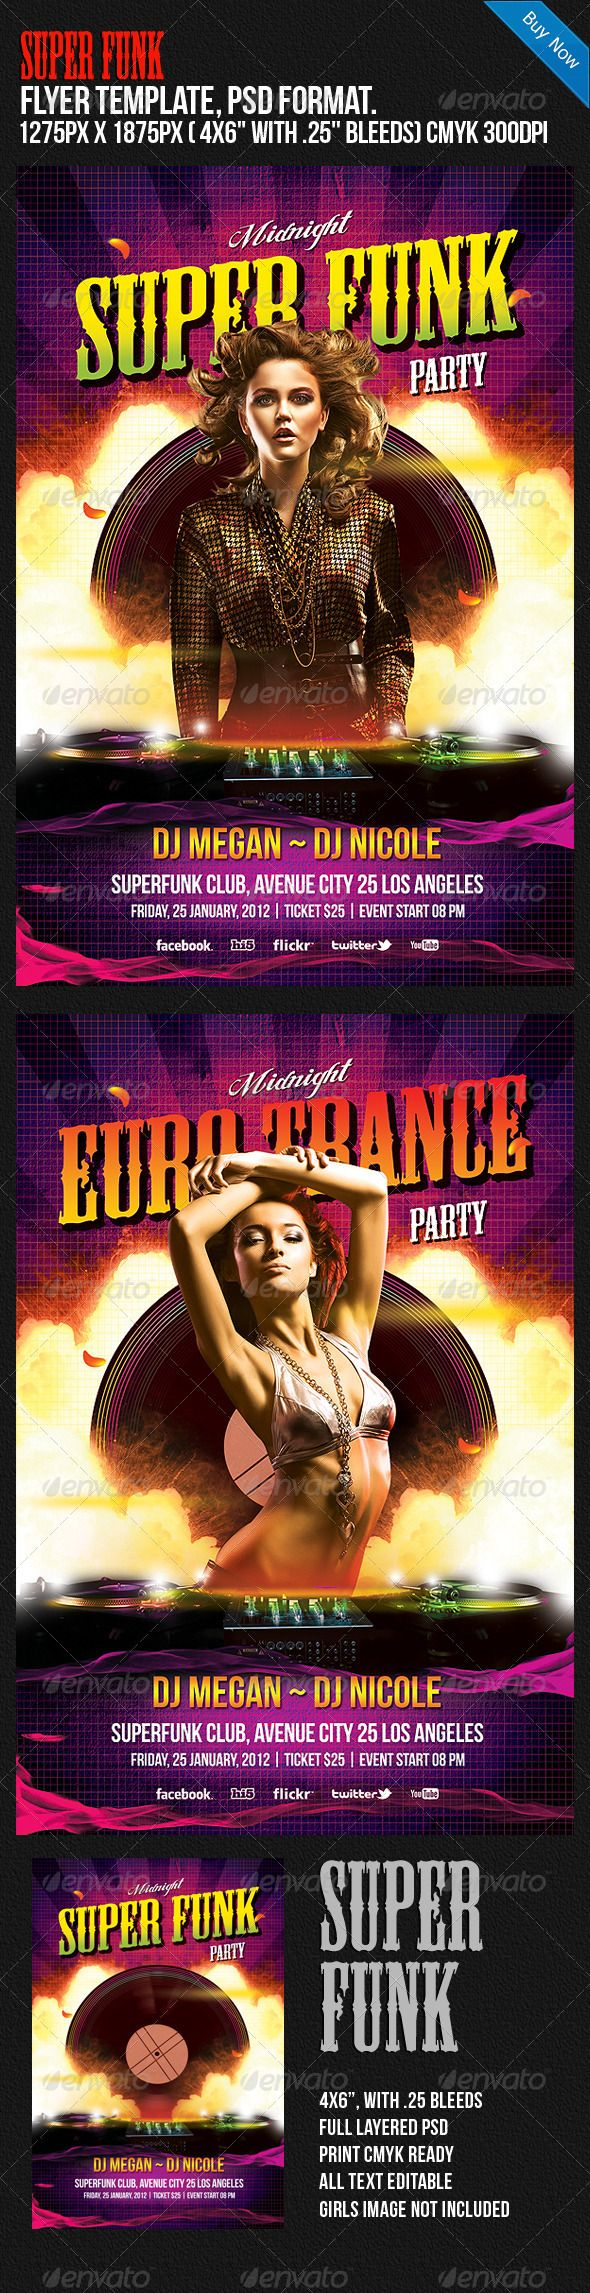 Super Funk Night Club Disco Party Flyer. Professional club party flyer template. #flyer #design #printDesign #party #club #print #bright #colourful #disco #dj #electro #event #funk #HipHop #HouseMusic #magenta #midnight #modern #music #nightclub #orange #pink #poster #promo #publication #r&b #red #stylish #trance #yellow #young